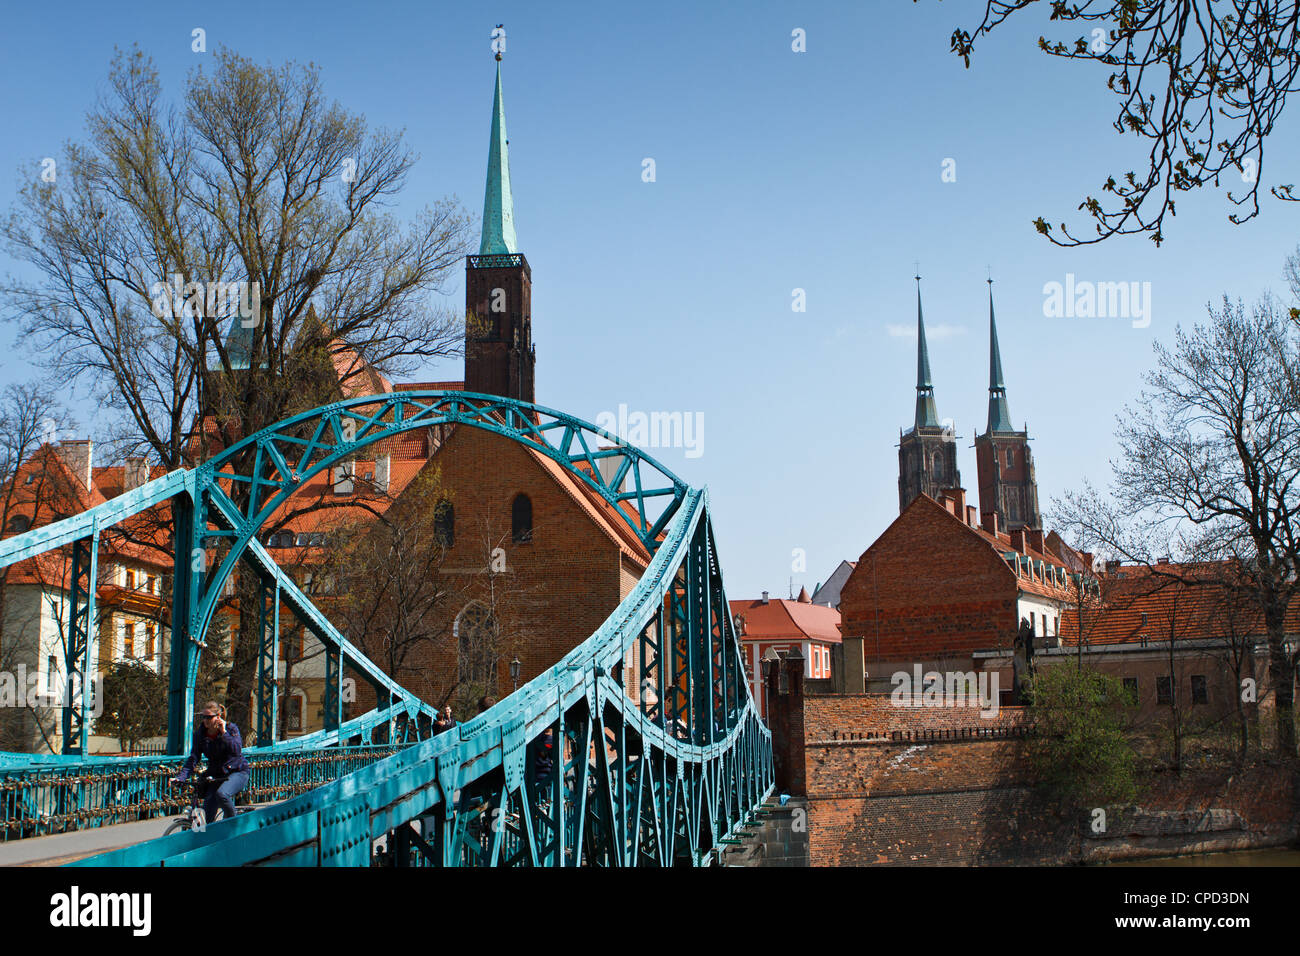 Tumski Bridge, Cathedral of St John Baptist and Church of the Holy Cross on Ostrow Tumski island in Wroclaw, Poland. Stock Photo